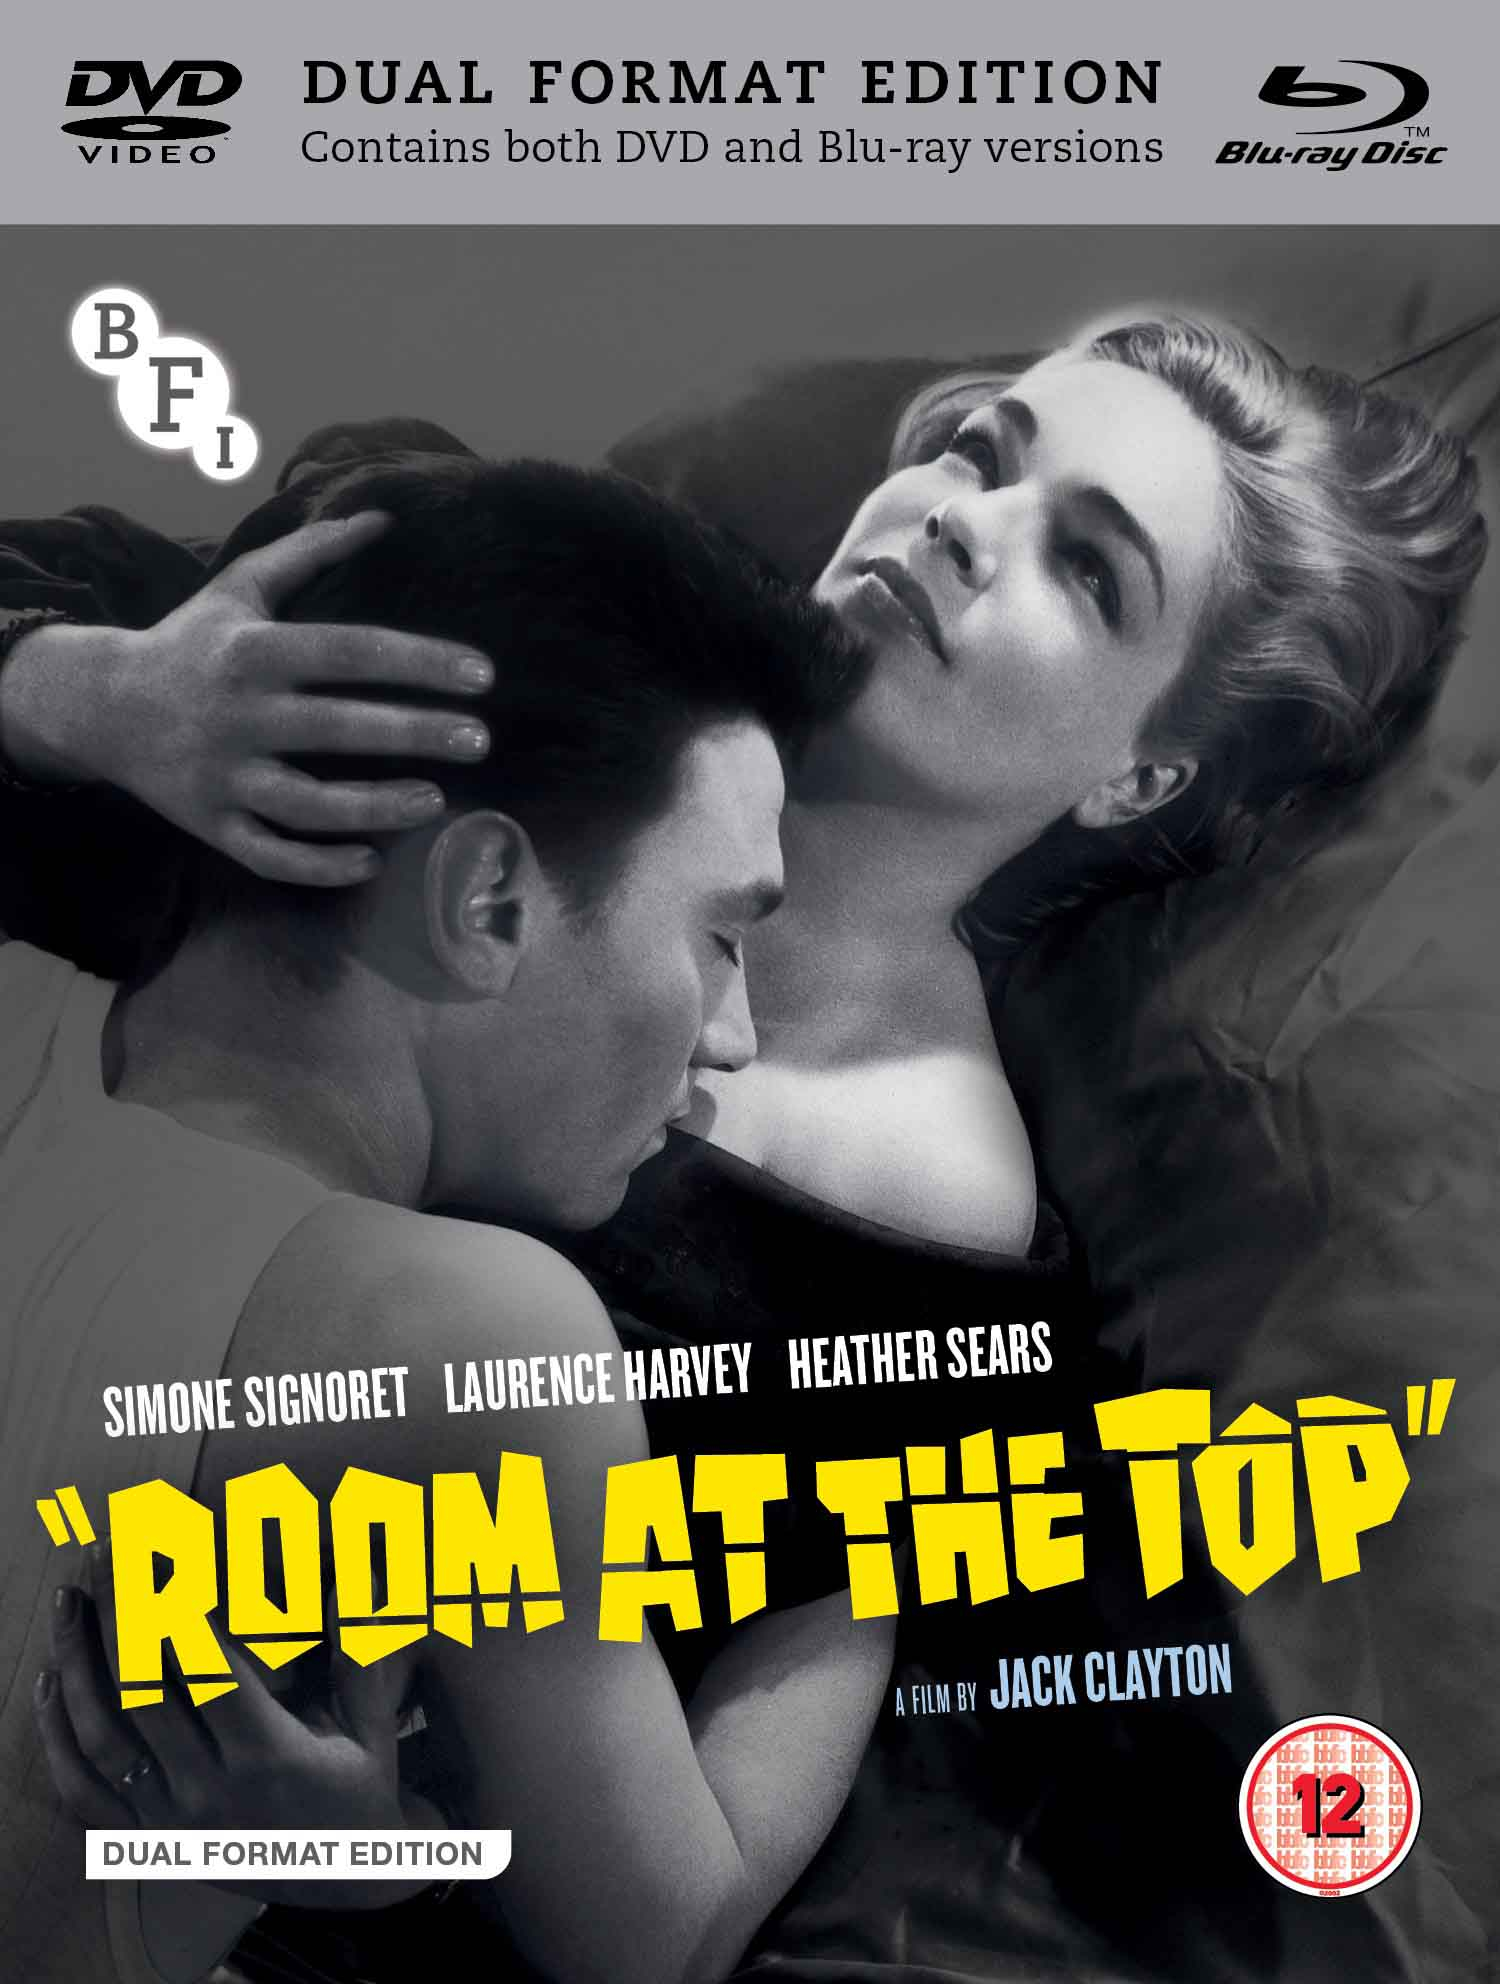 Buy Room at the Top (Dual Format Edition)